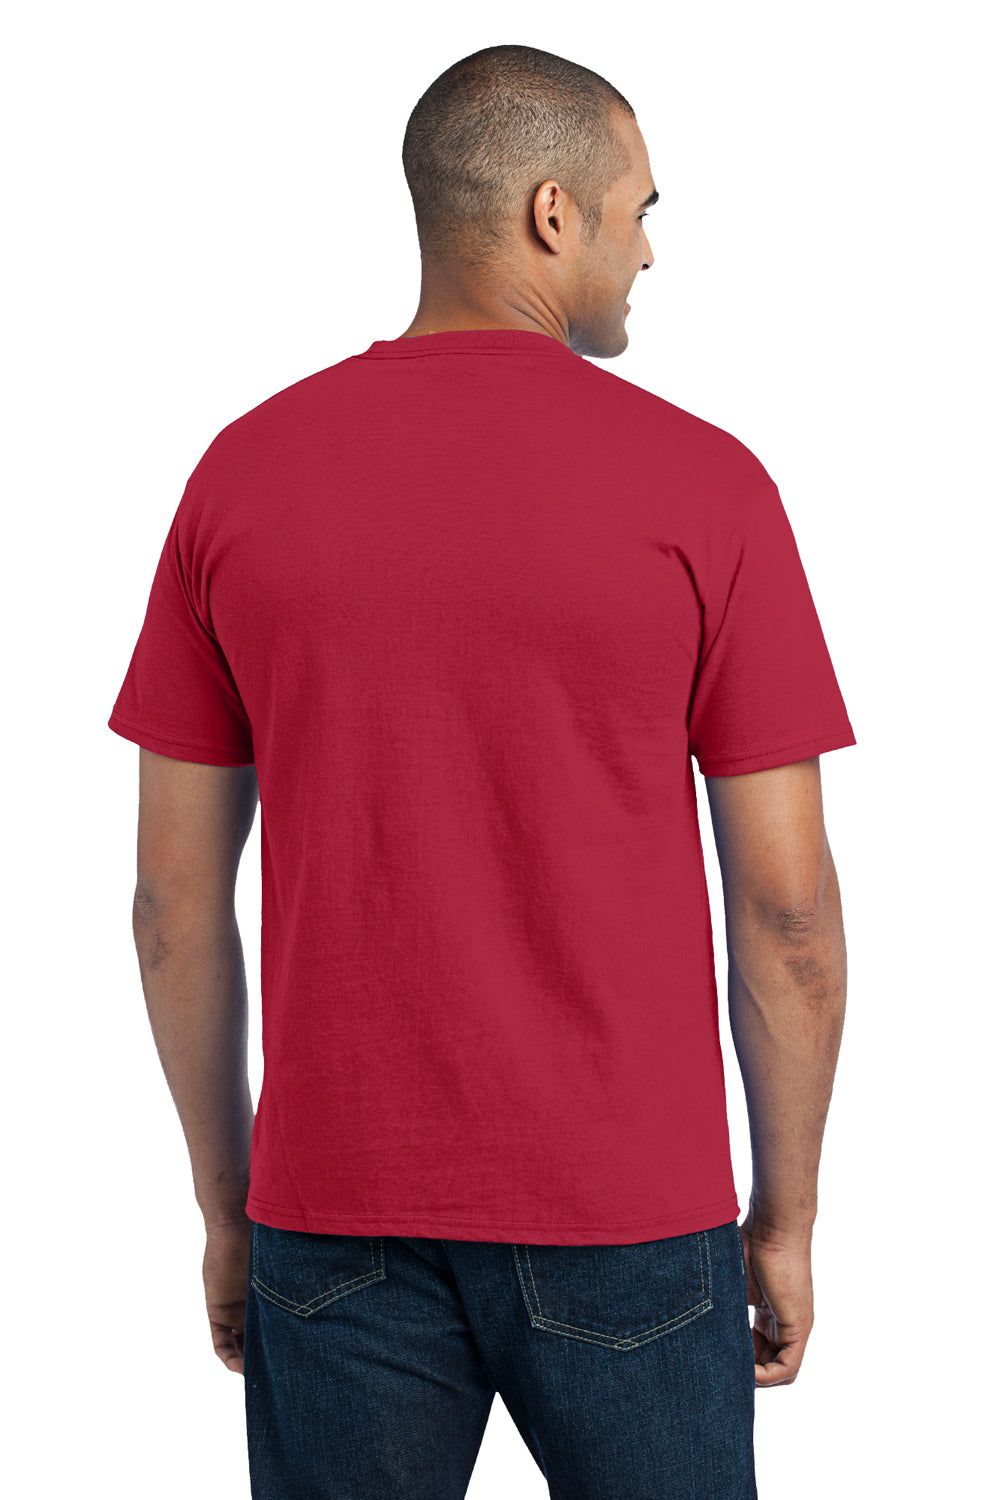 Port & Company PC55P Mens Core Short Sleeve Crewneck T-Shirt w/ Pocket Red Back